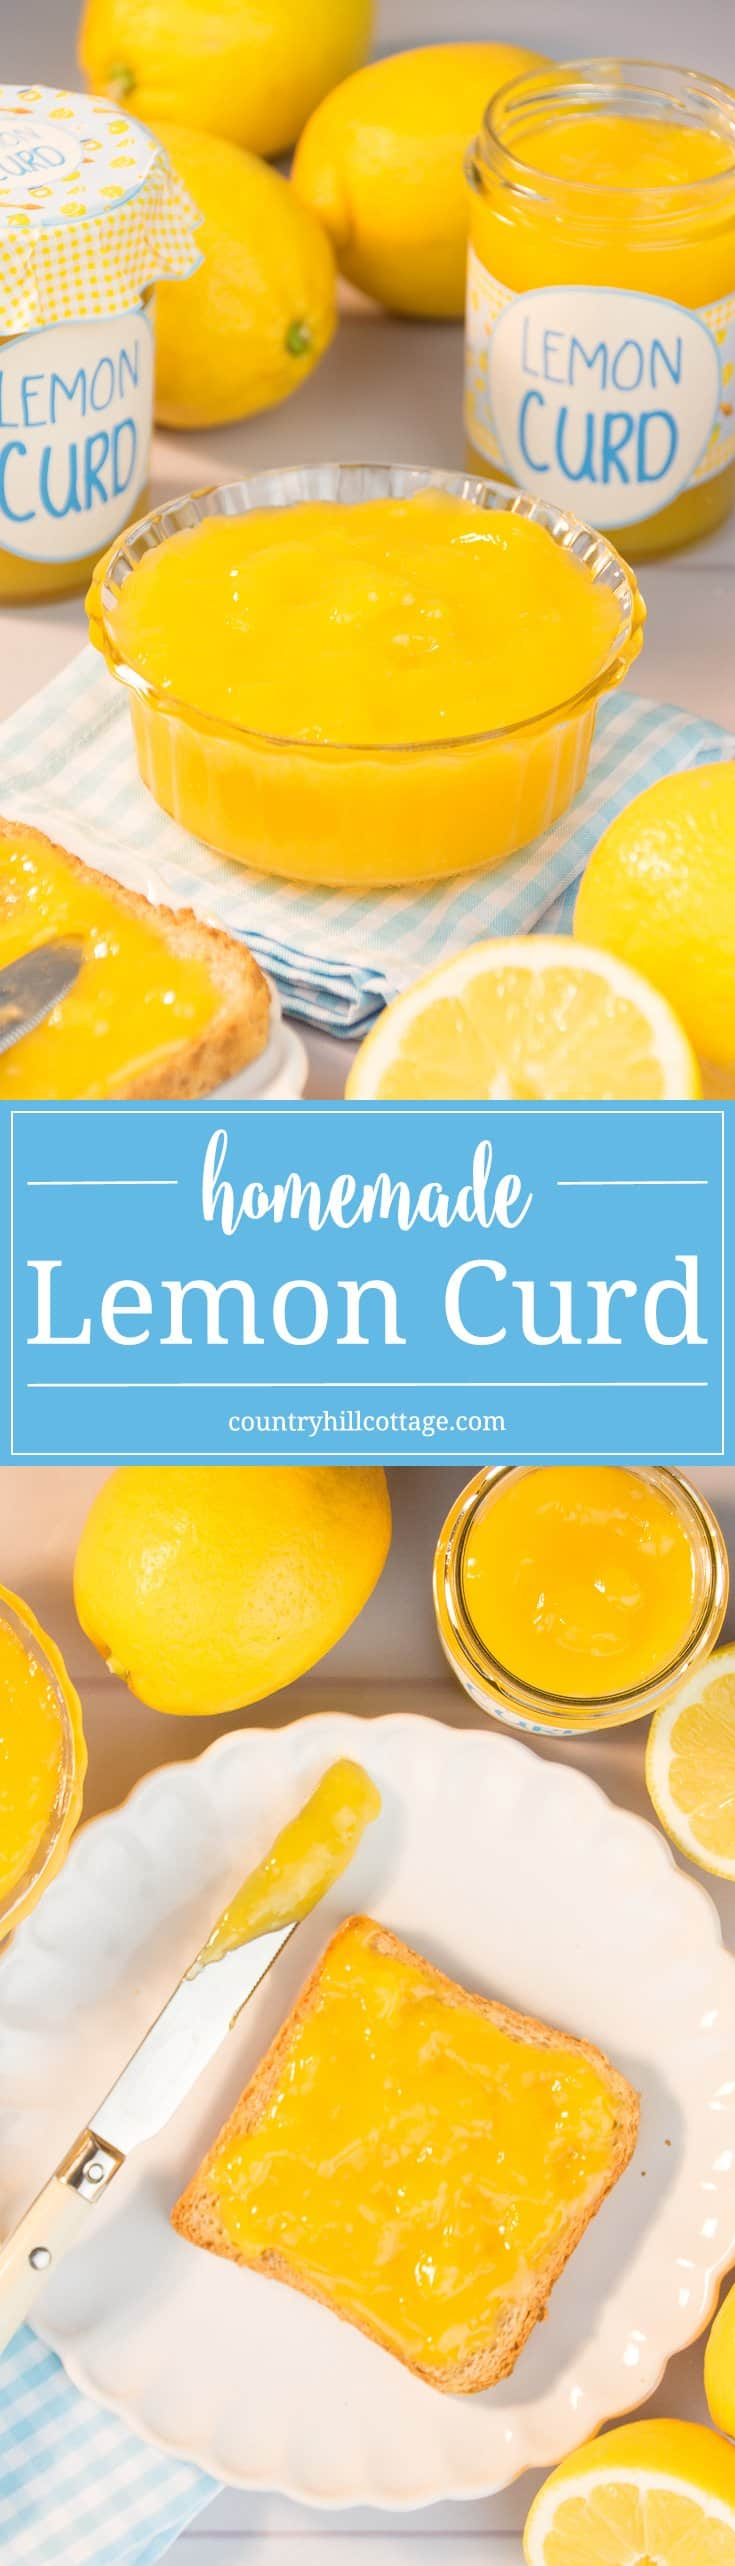 We love homemade lemon curd on warm toast or as a filling for cakes. Learn to make it yourself with our easy tutorial! #yummy #lemoncurd | countryhillcottage.com